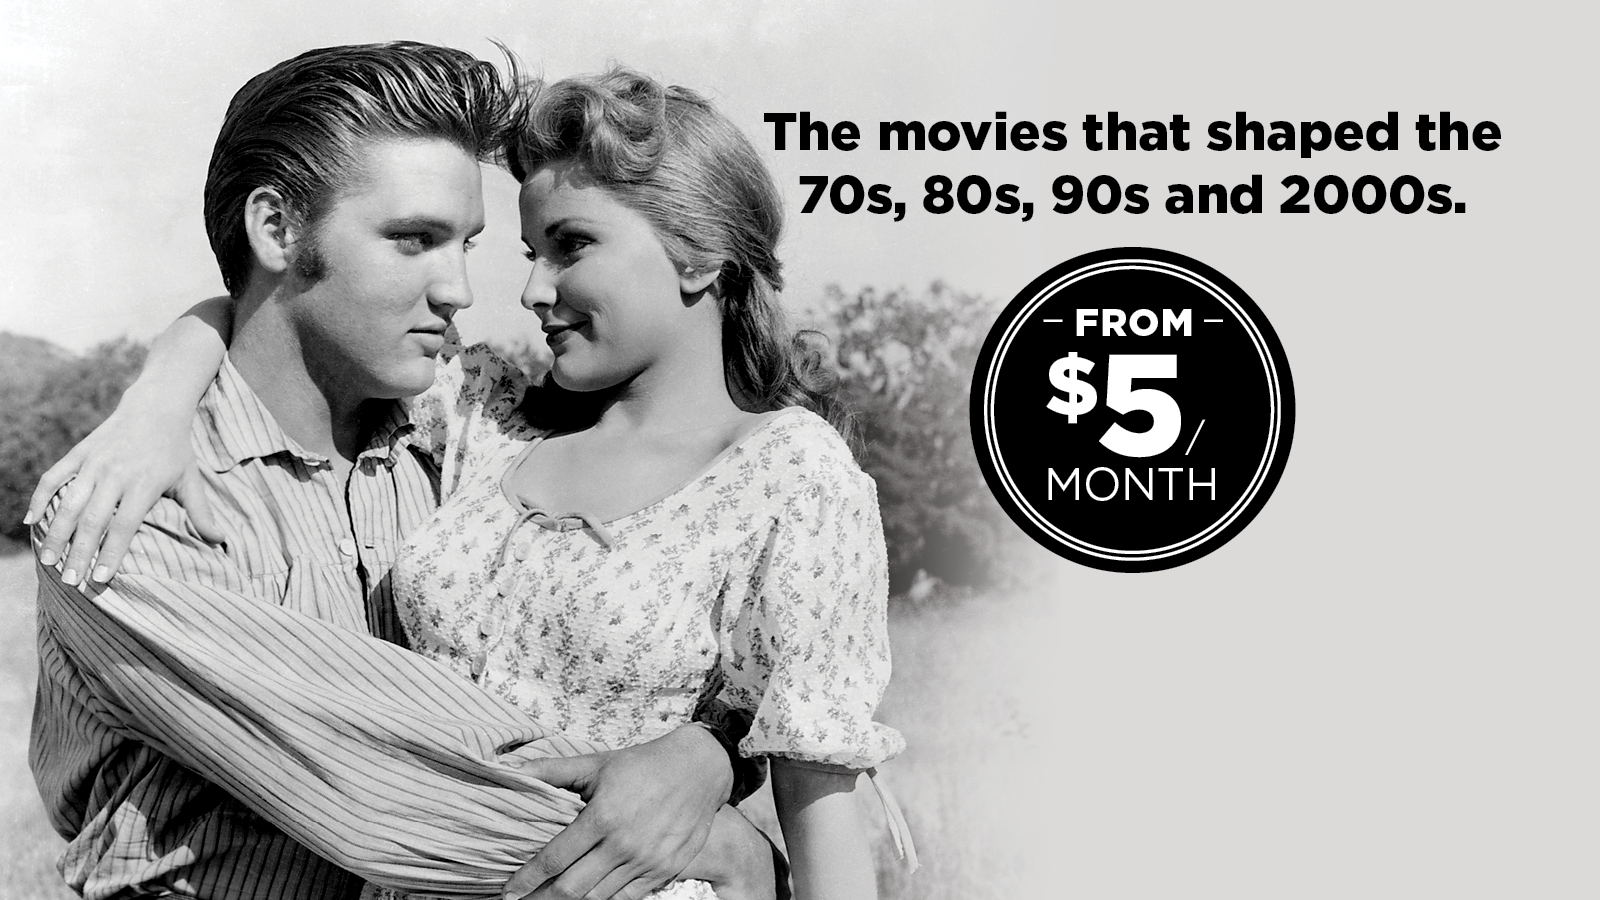 The movies that shaped the 70s, 80s, 90s and 2000s. From $5/month. Click to learn more.